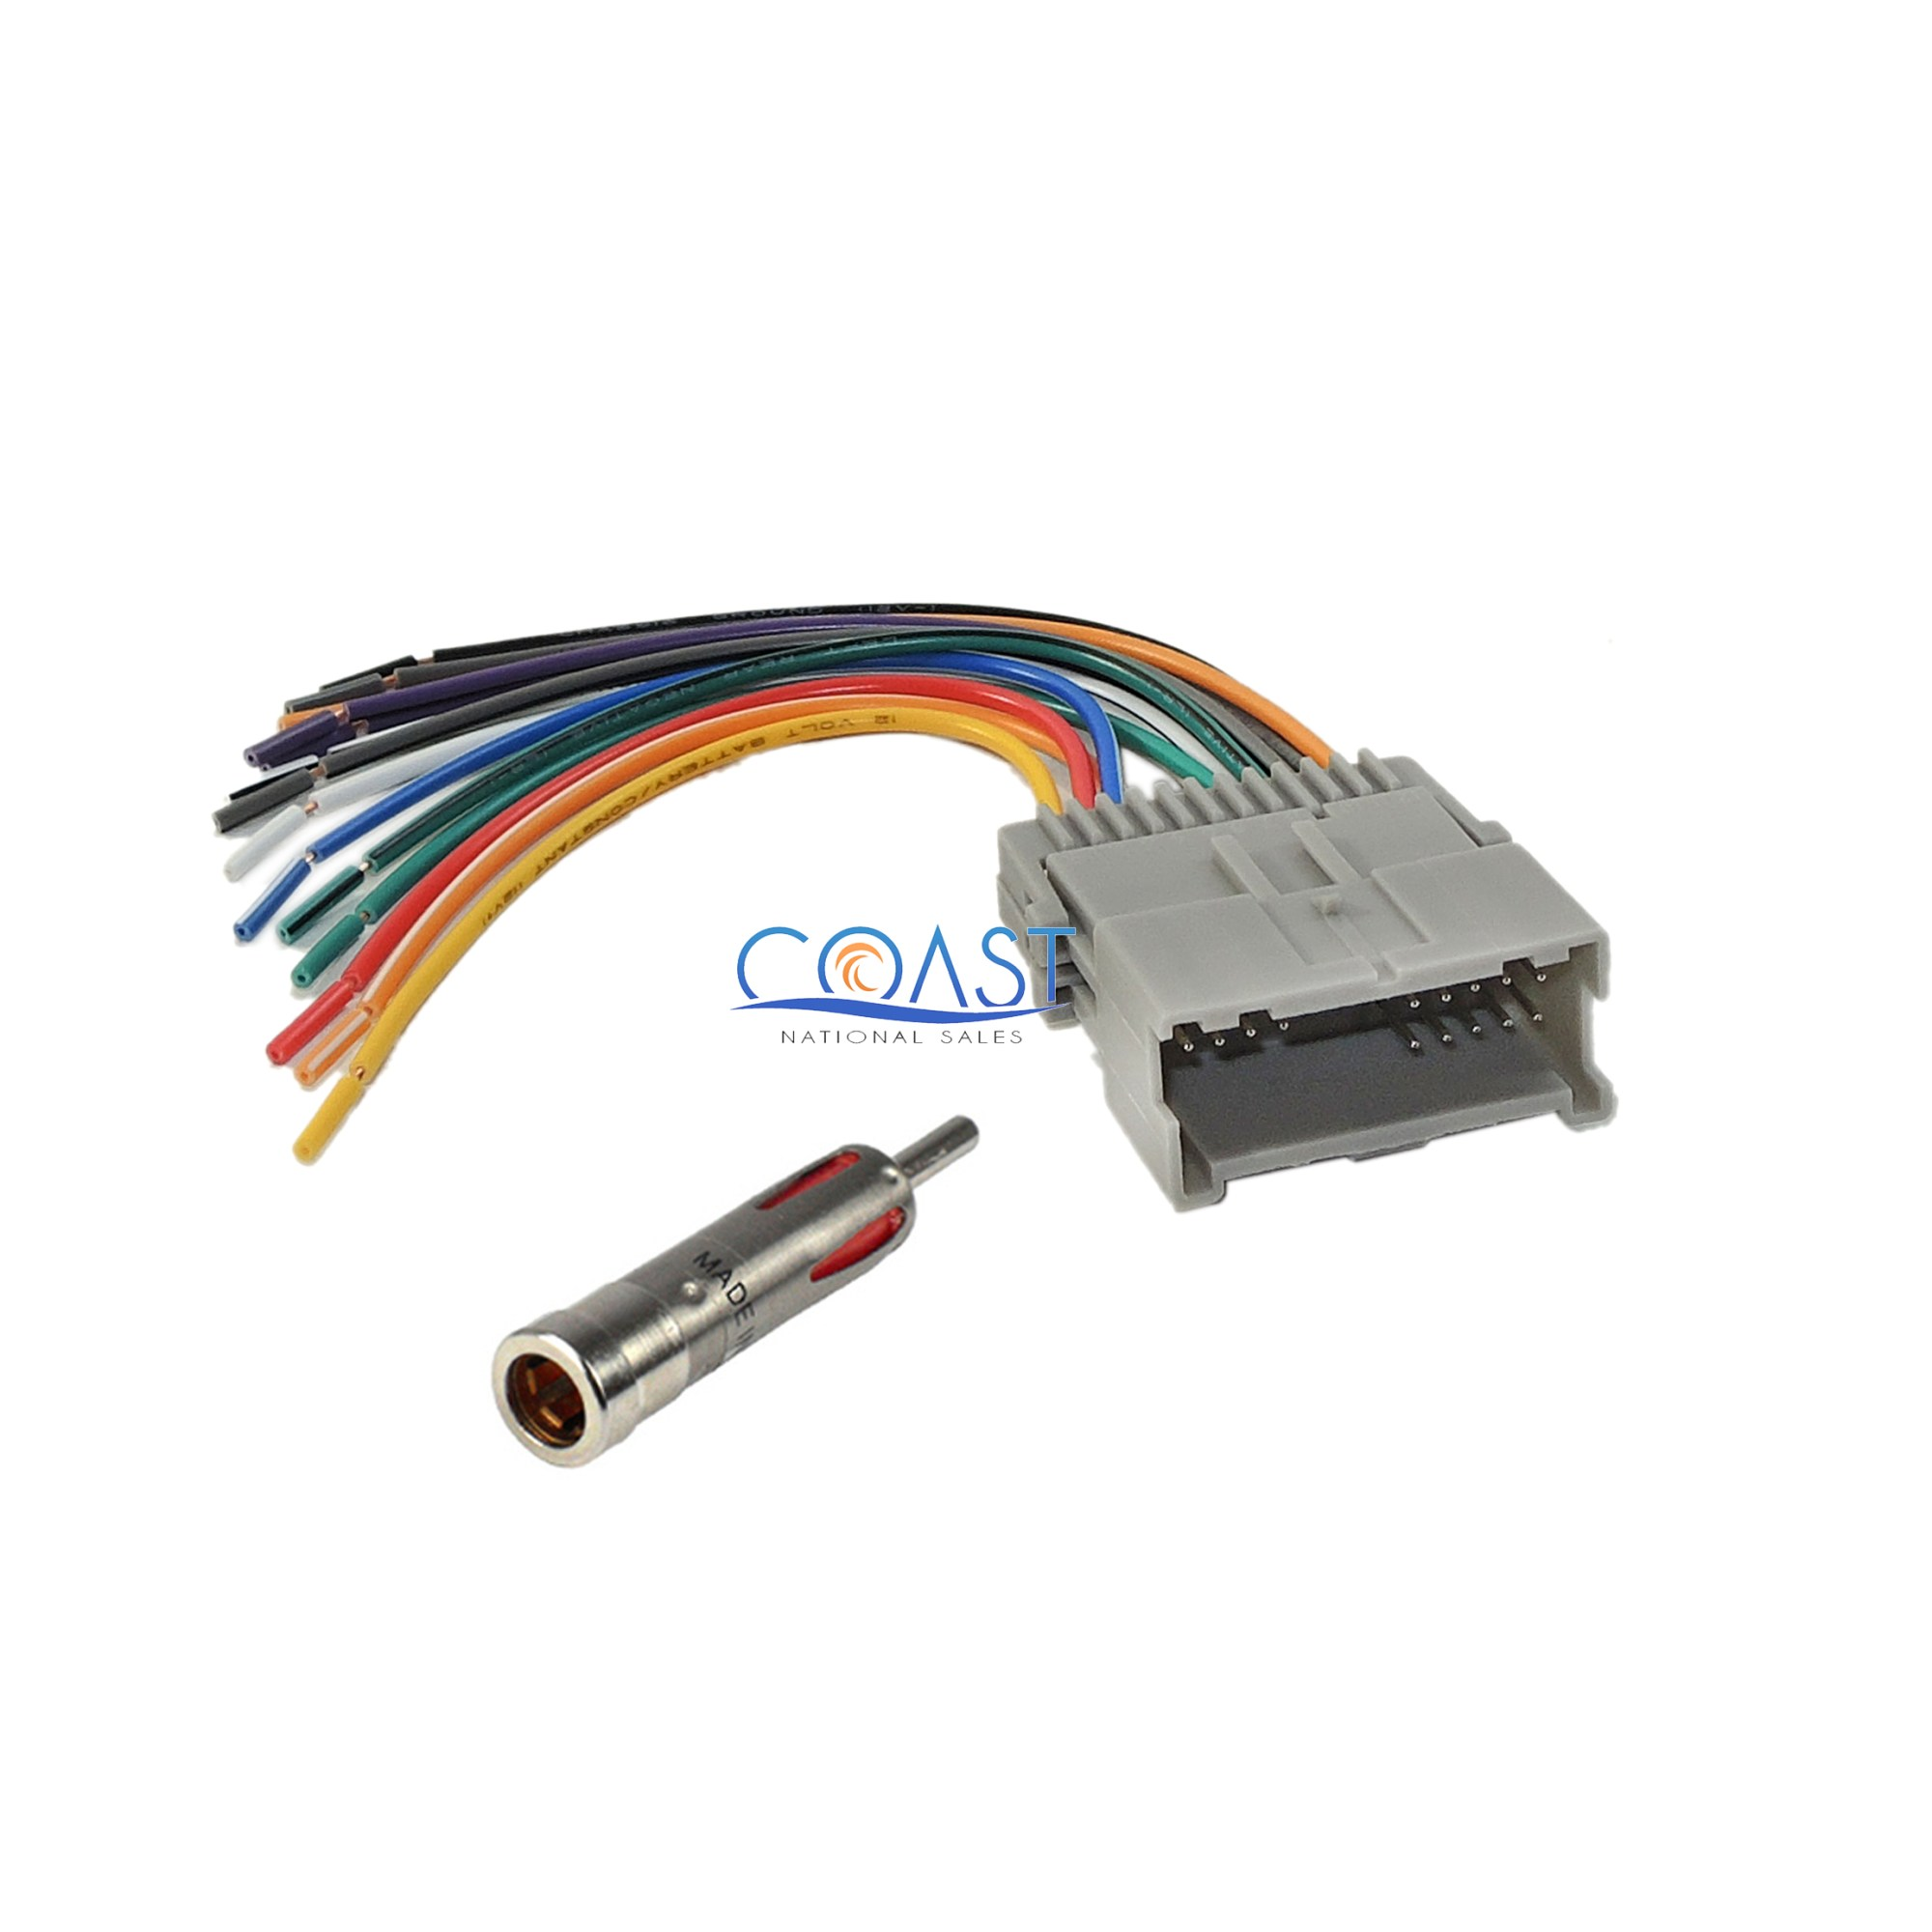 hight resolution of car stereo radio wiring harness antenna for 2000 up buick chevy gmccar stereo radio wiring harness